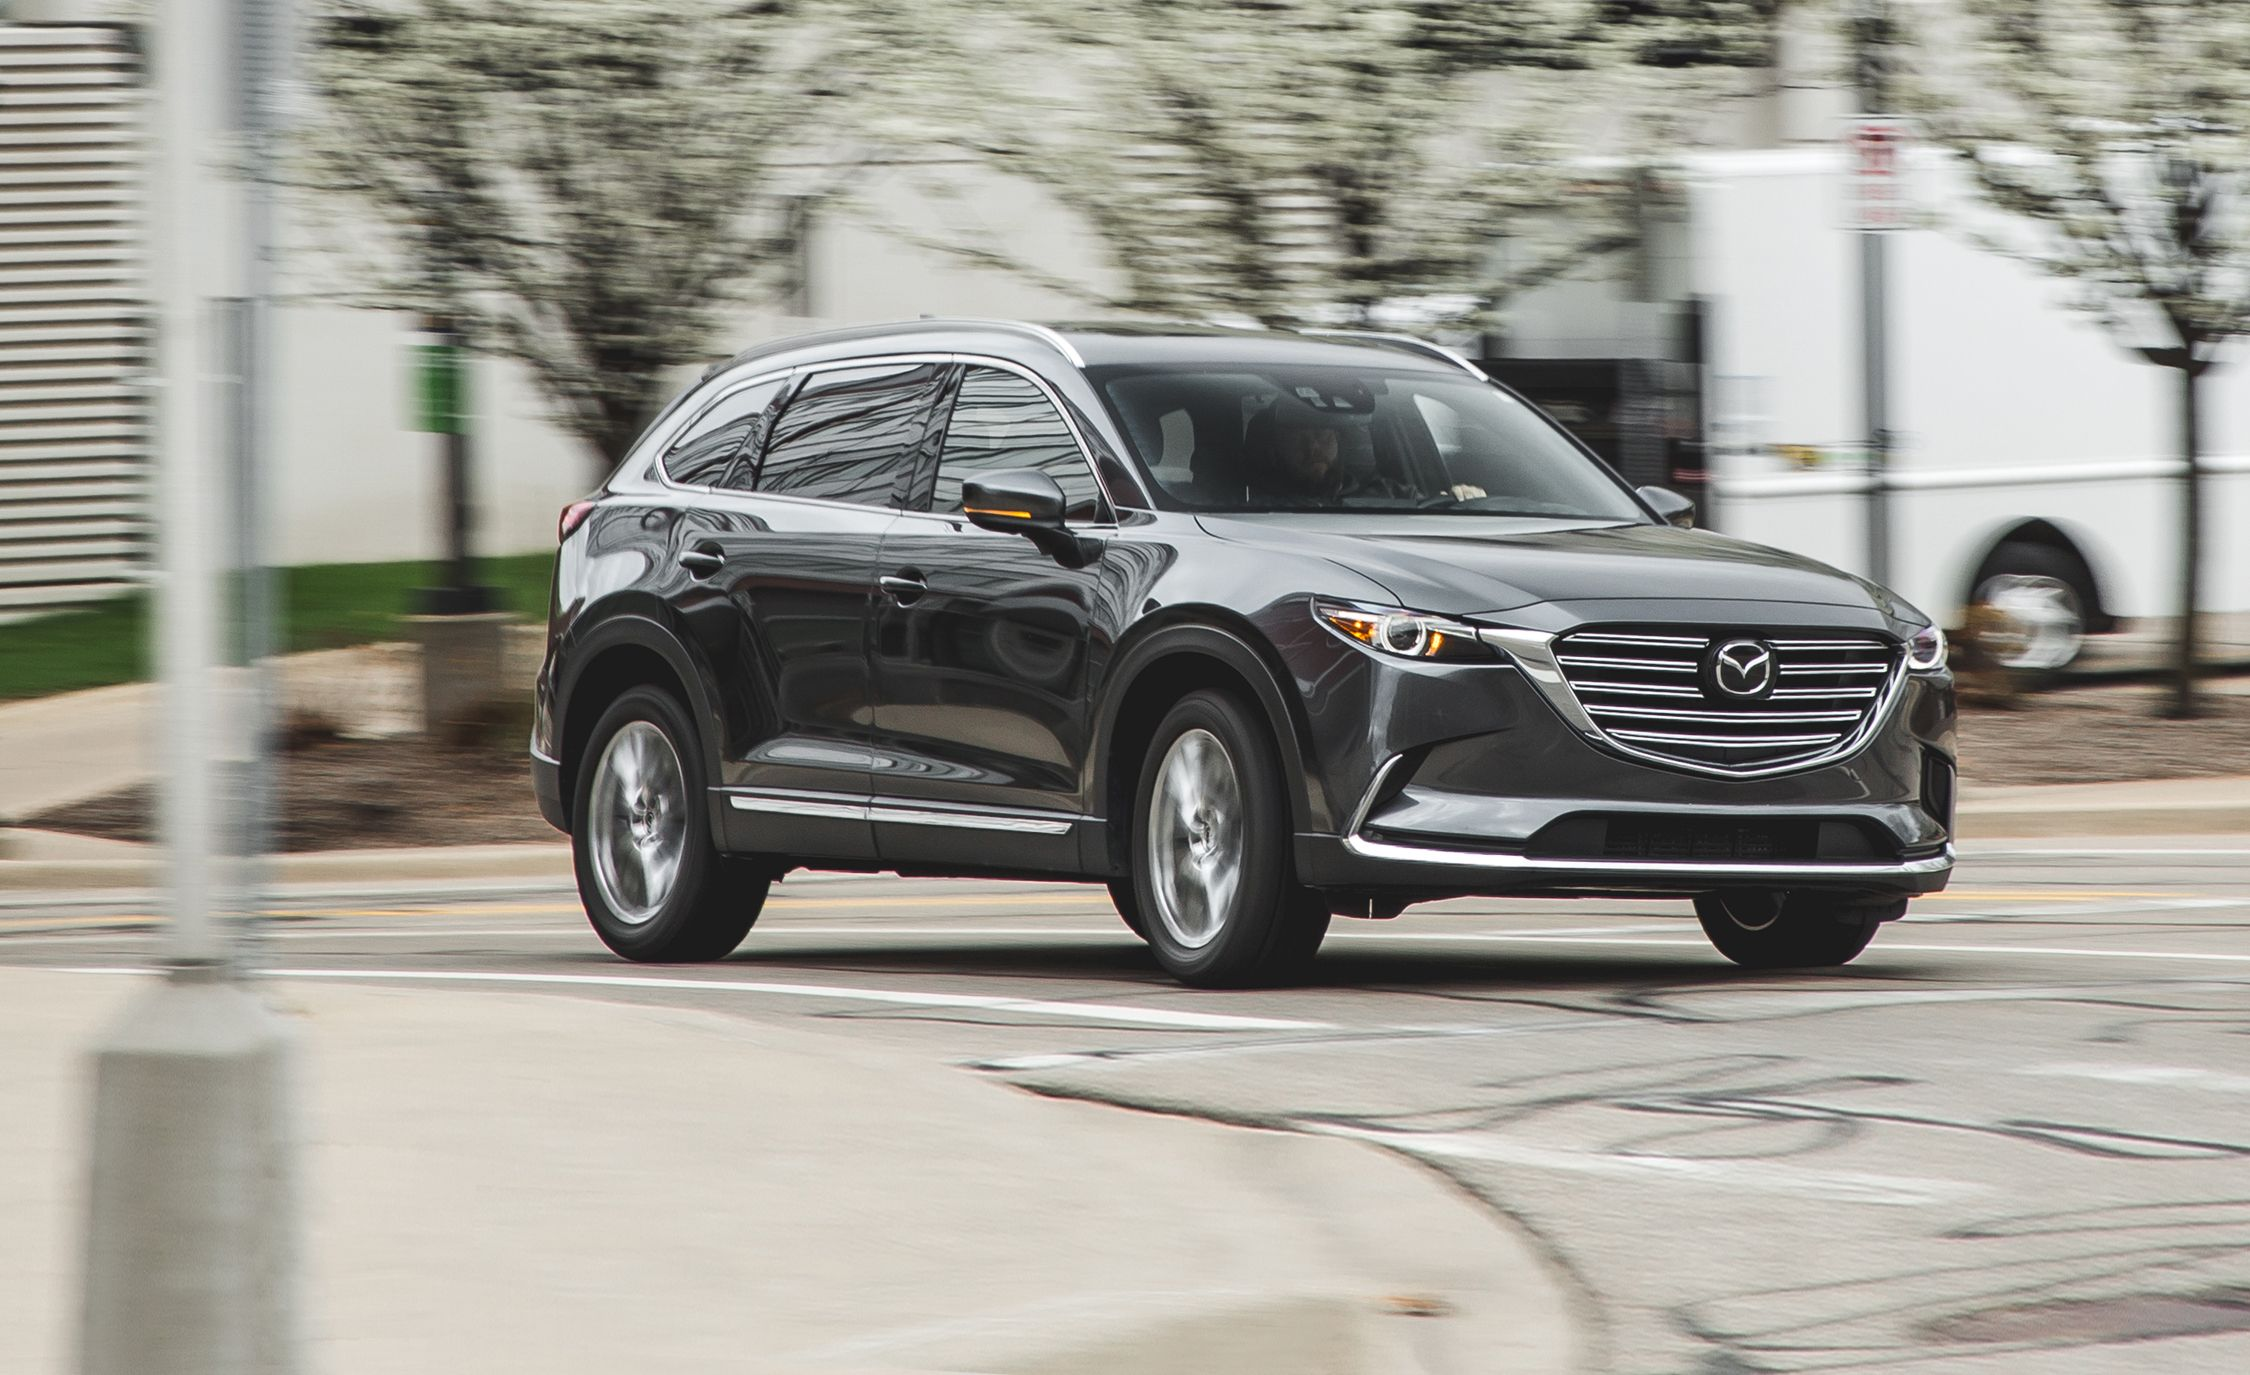 Mdx Cargo Space >> 2018 Mazda CX-9 | In-Depth Model Review | Car and Driver